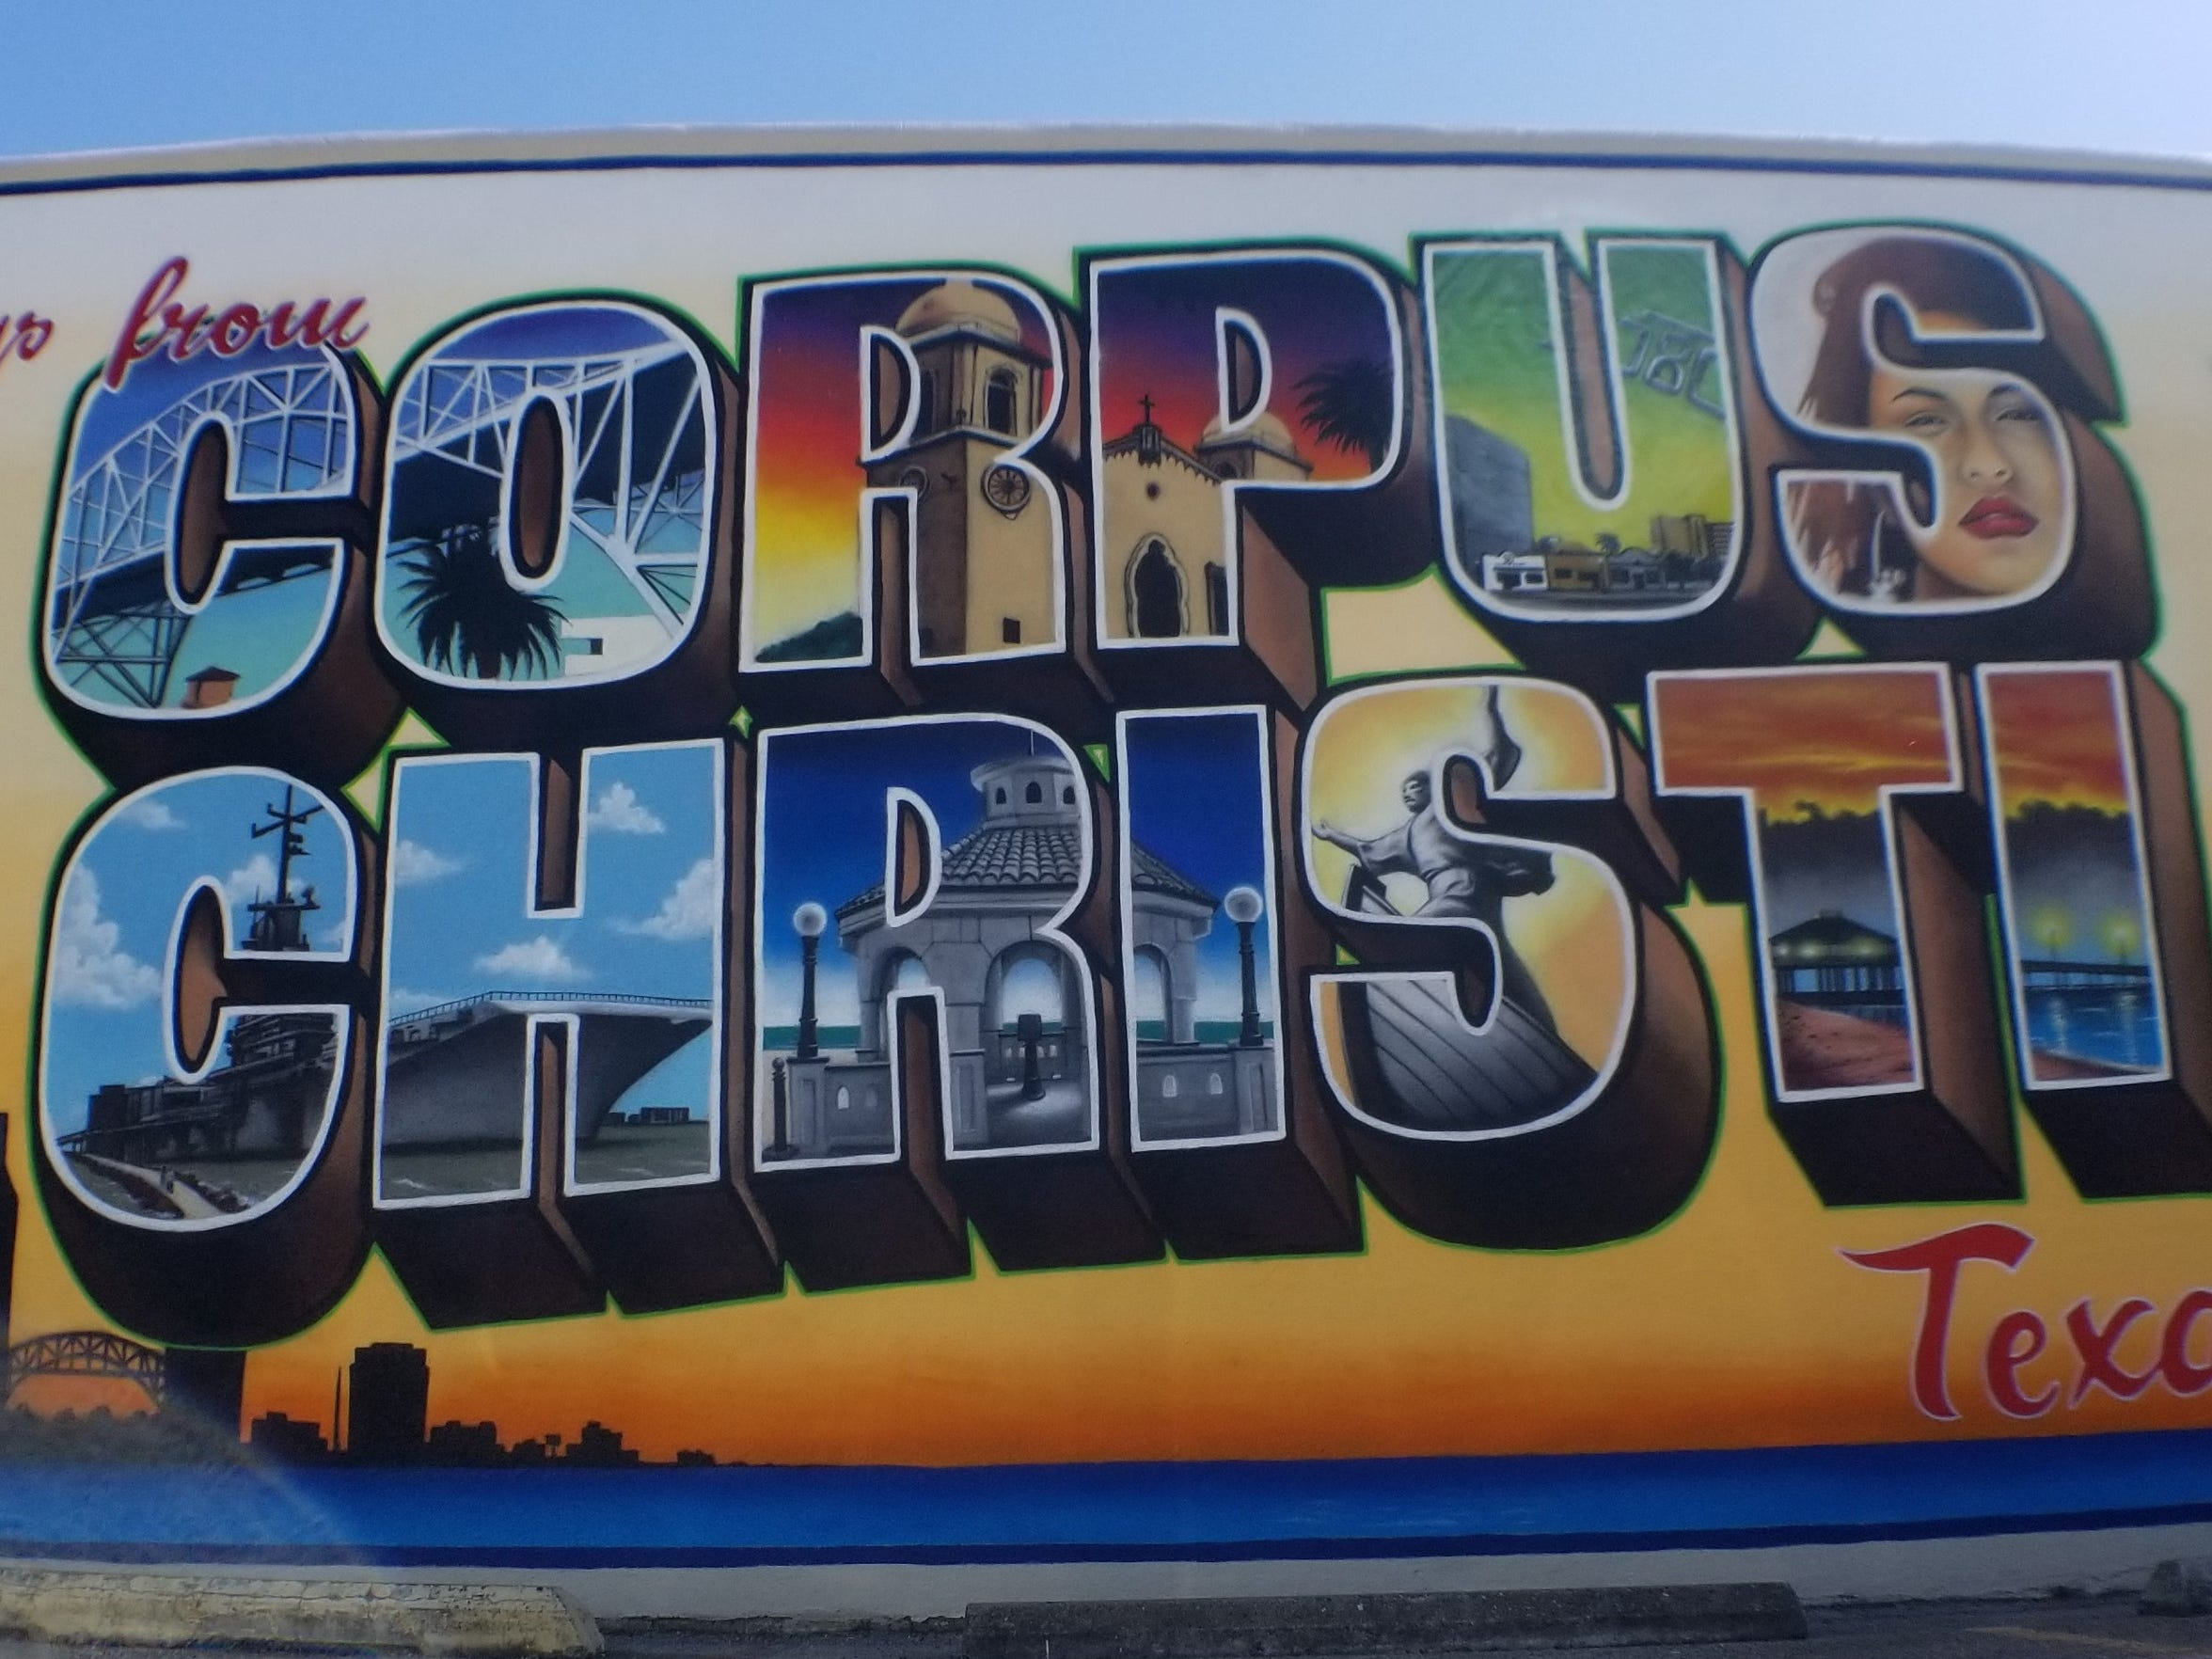 Greetings From Corpus Christi mural on Mesquite Street